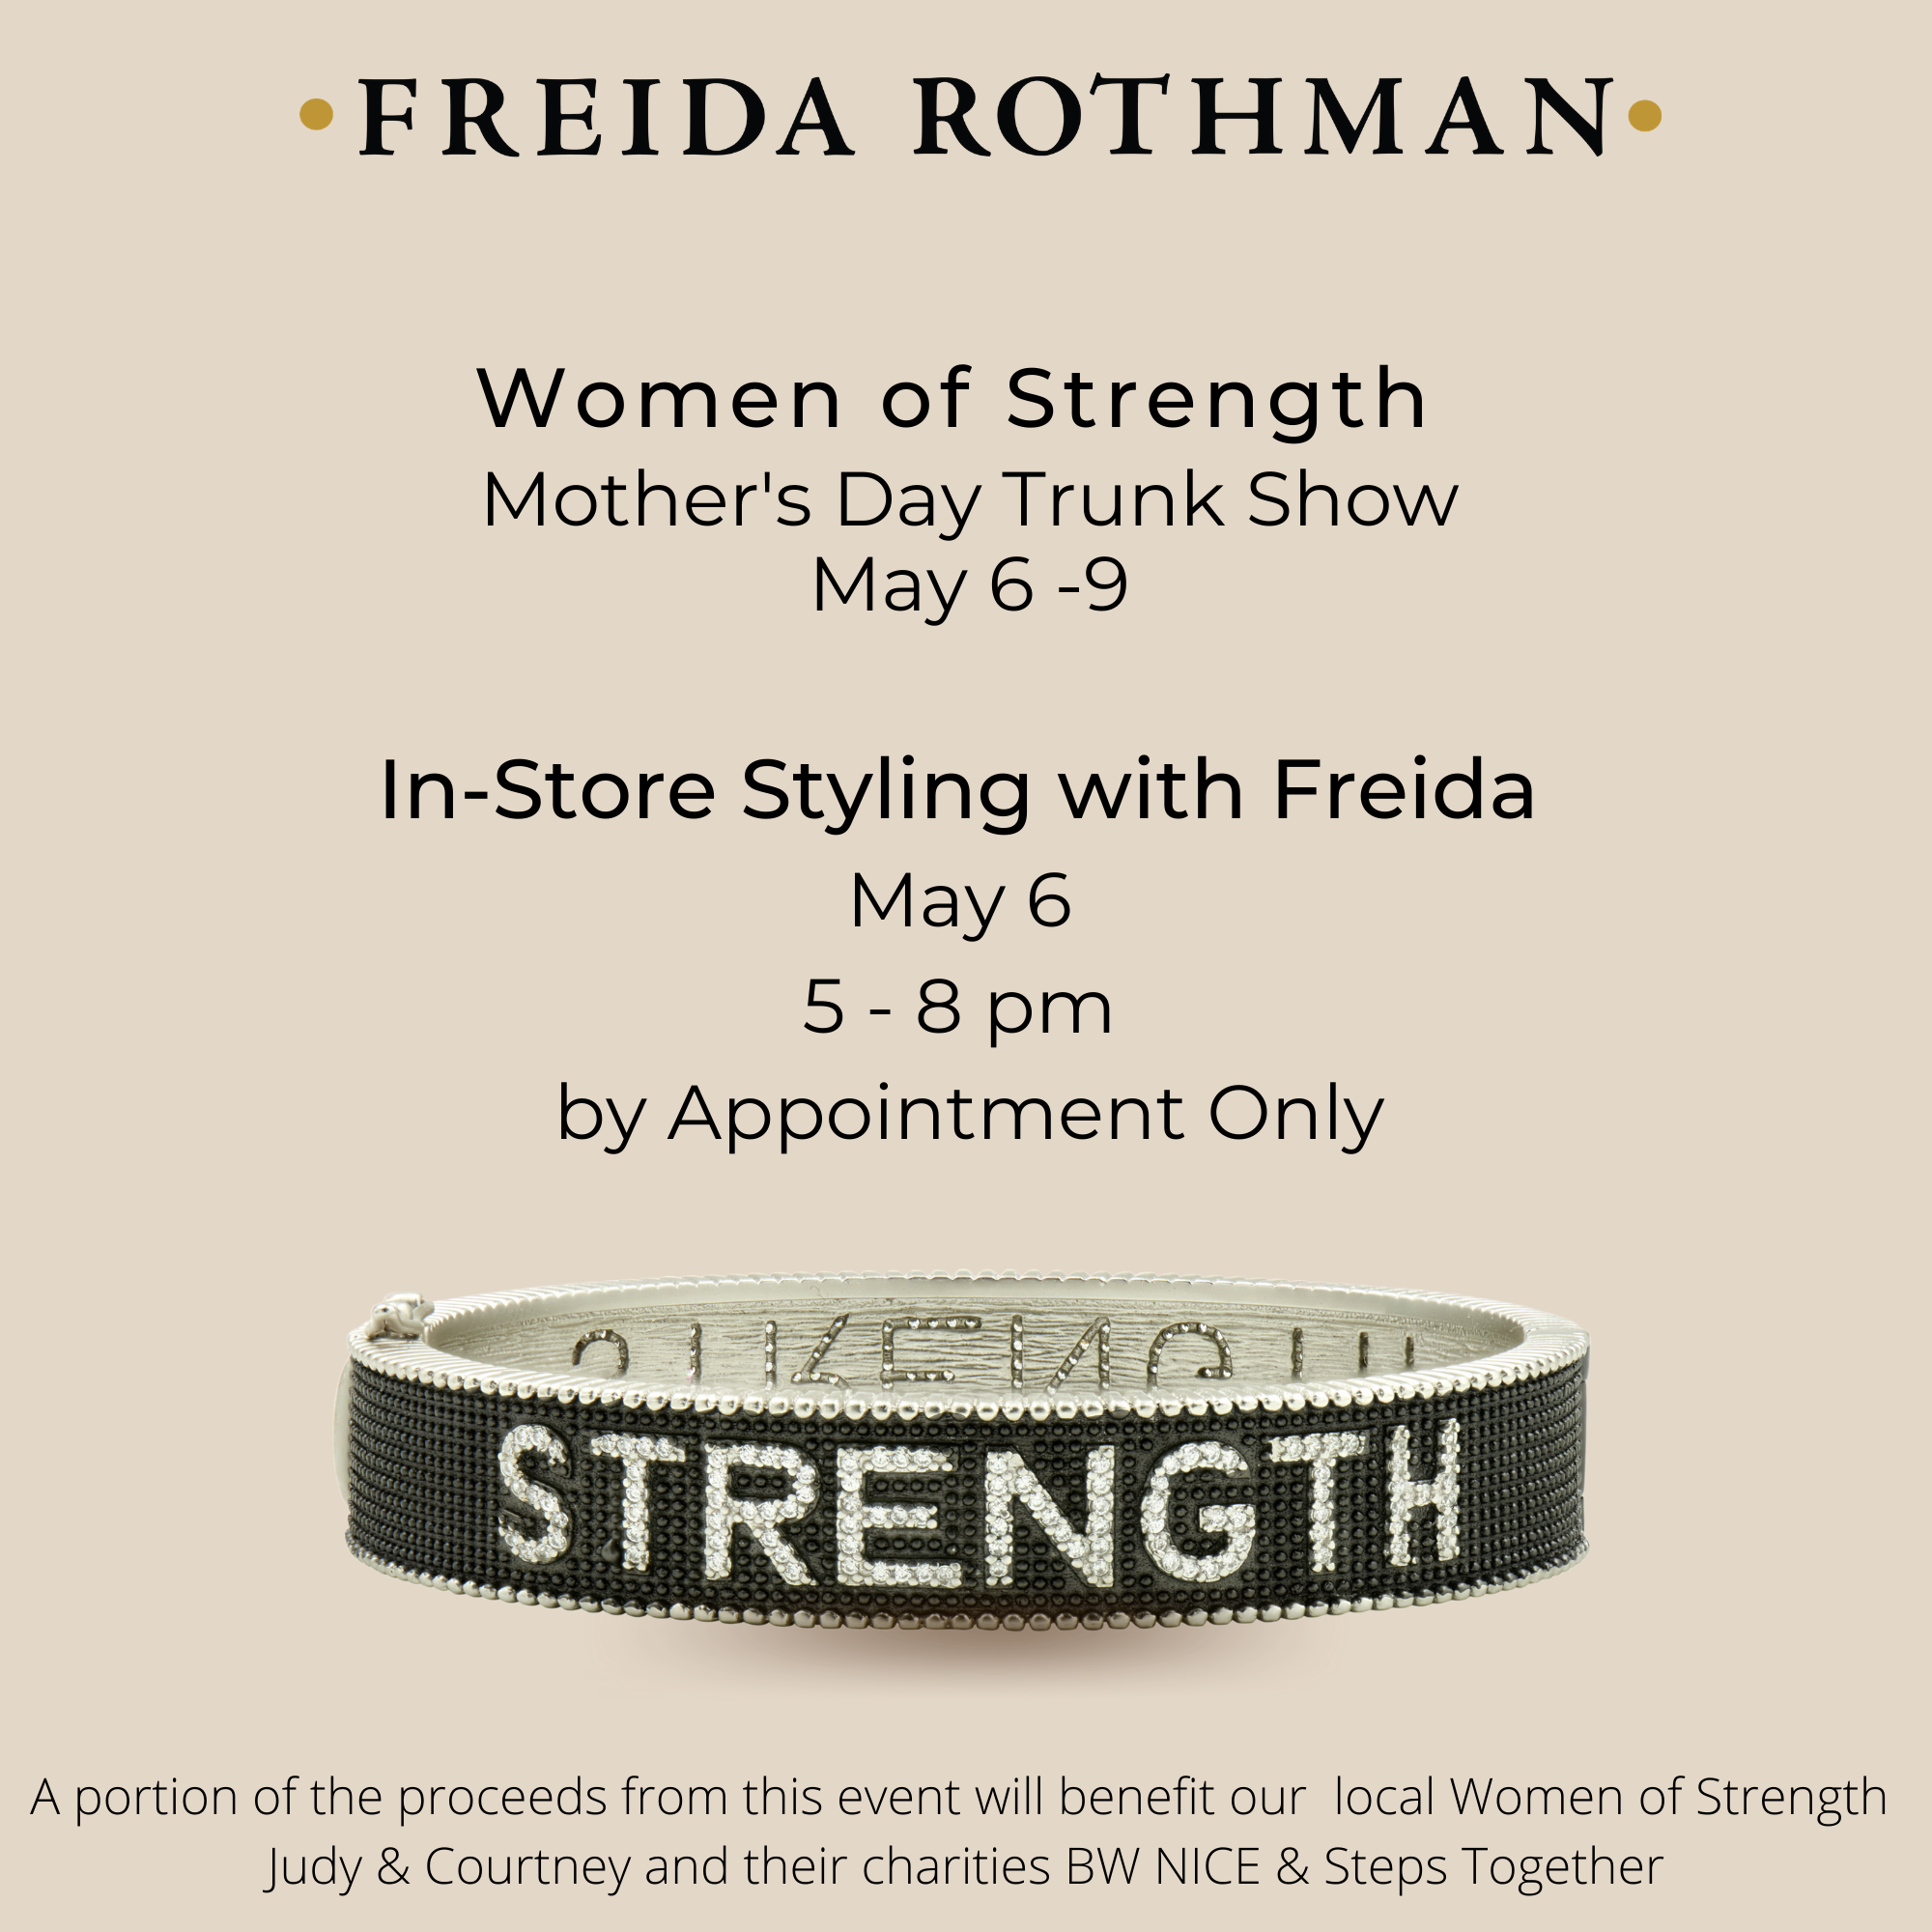 Women of Strength Mother's Day Event with Freida Rothman